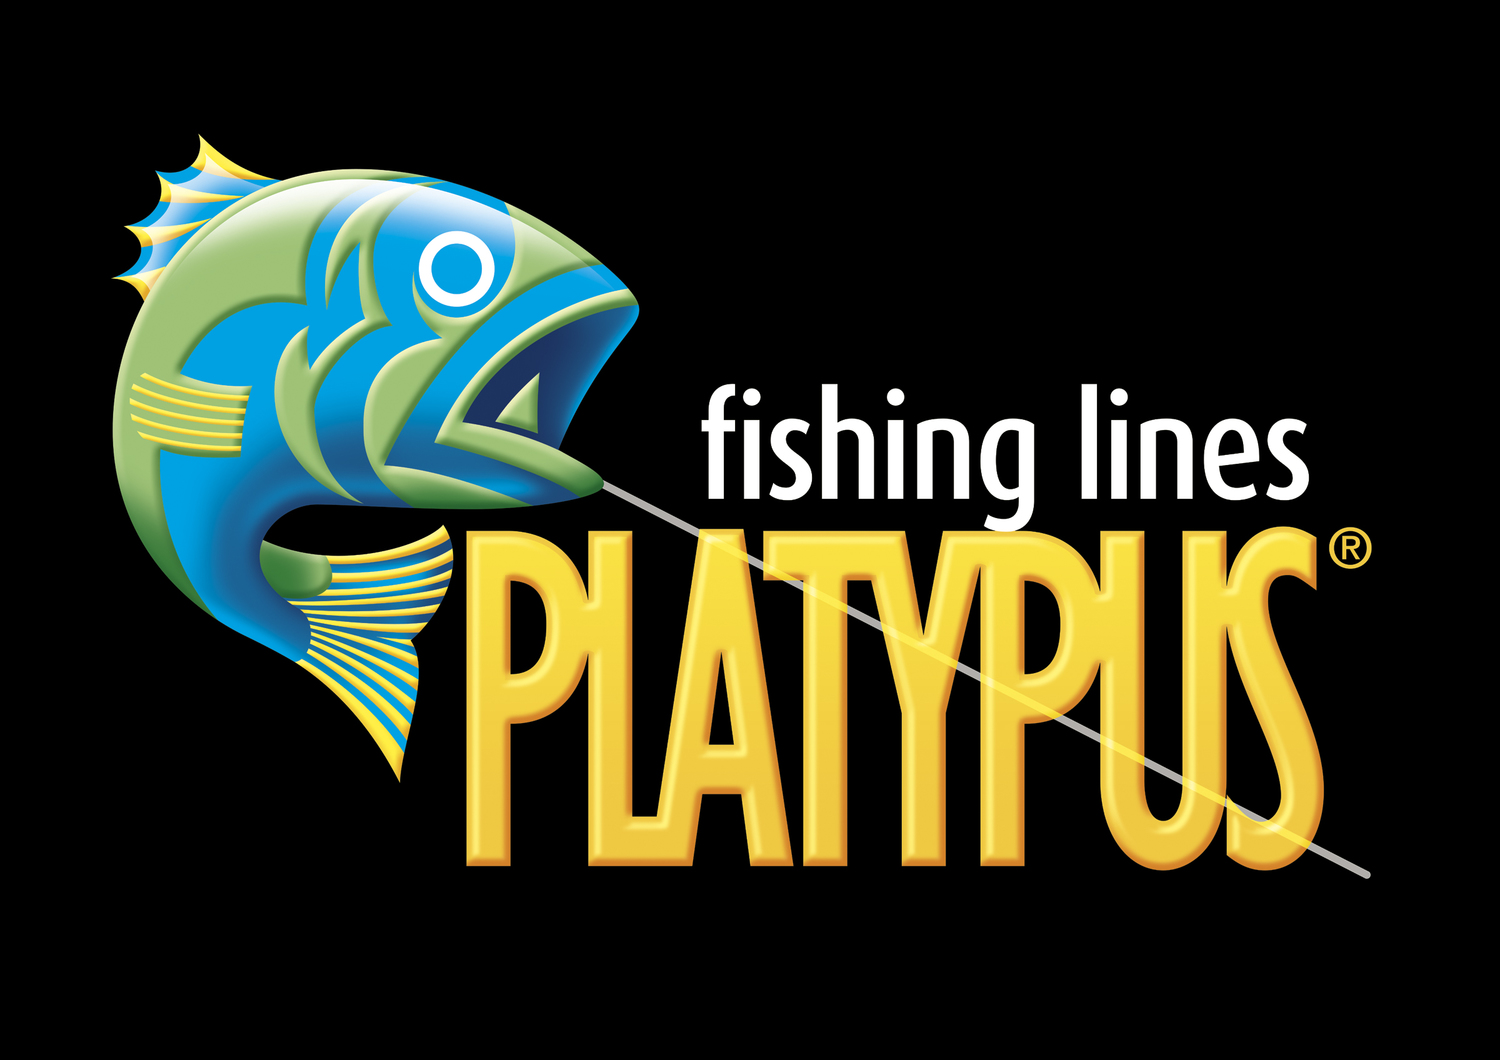 Platypus Fishing Lines - USA